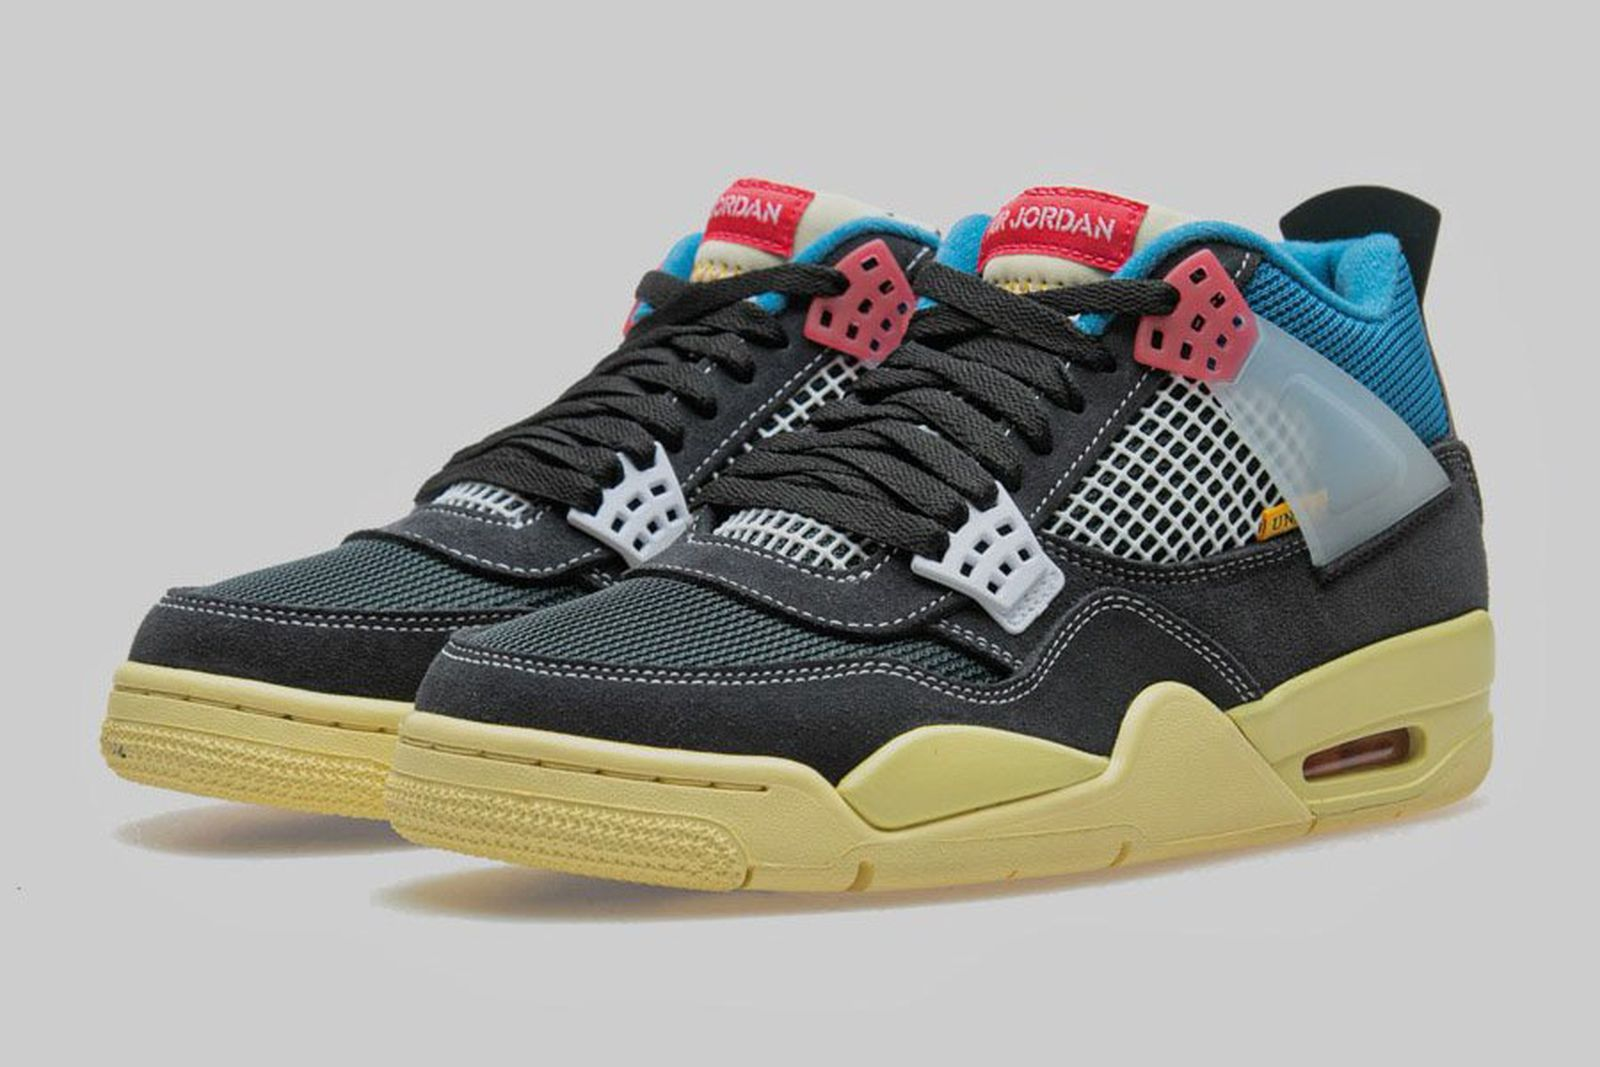 Union X Nike Air Jordan 4 How Where To Buy In Europe Today